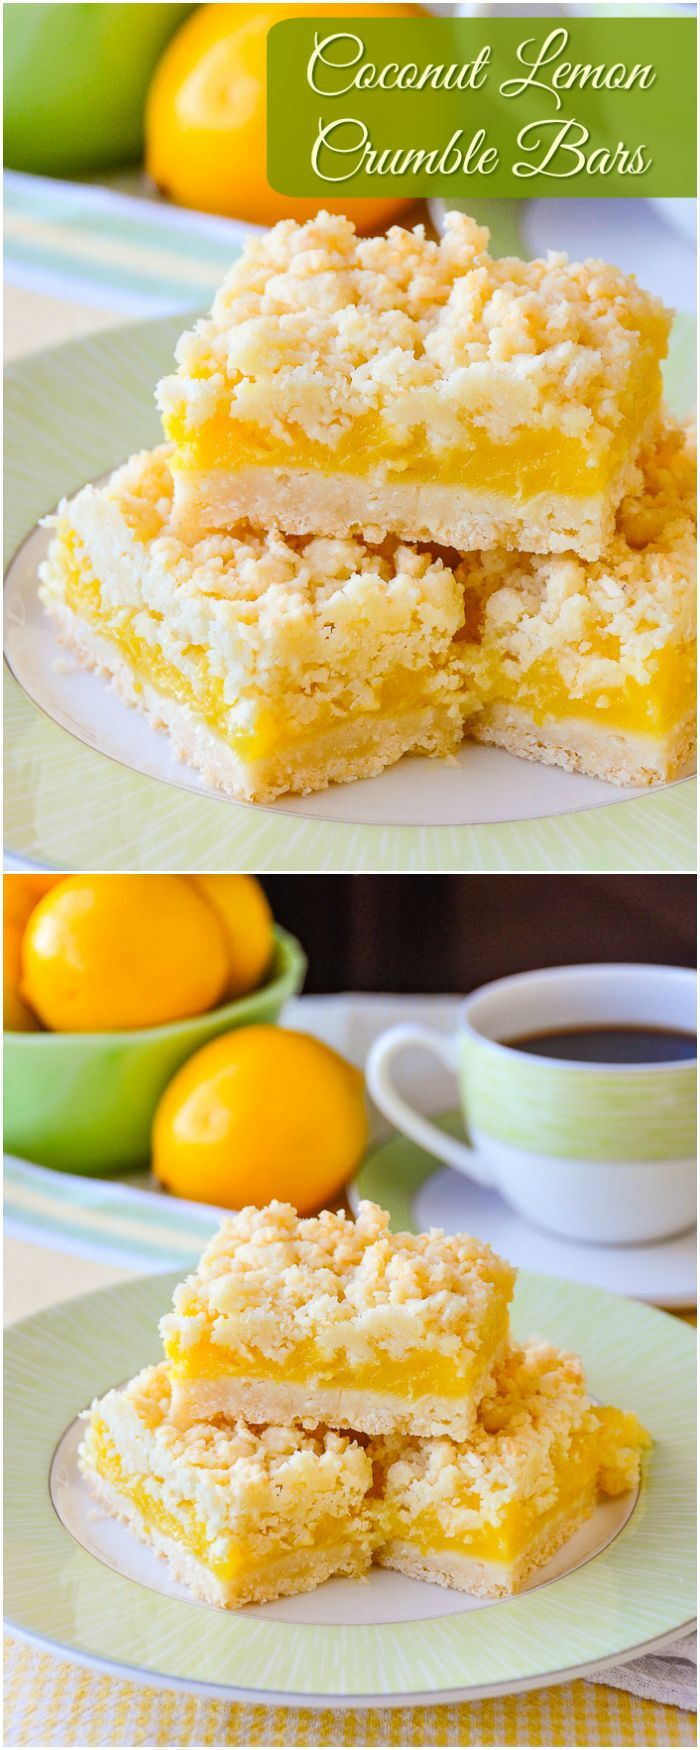 Coconut Lemon Crumble Bars. A 35+ year old family recipe that combines coconut and tangy lemon filling in a buttery crumble bar cookie. These cookie bars freeze quite well too. #cookiebars #Christmascookies #freezerfriendly